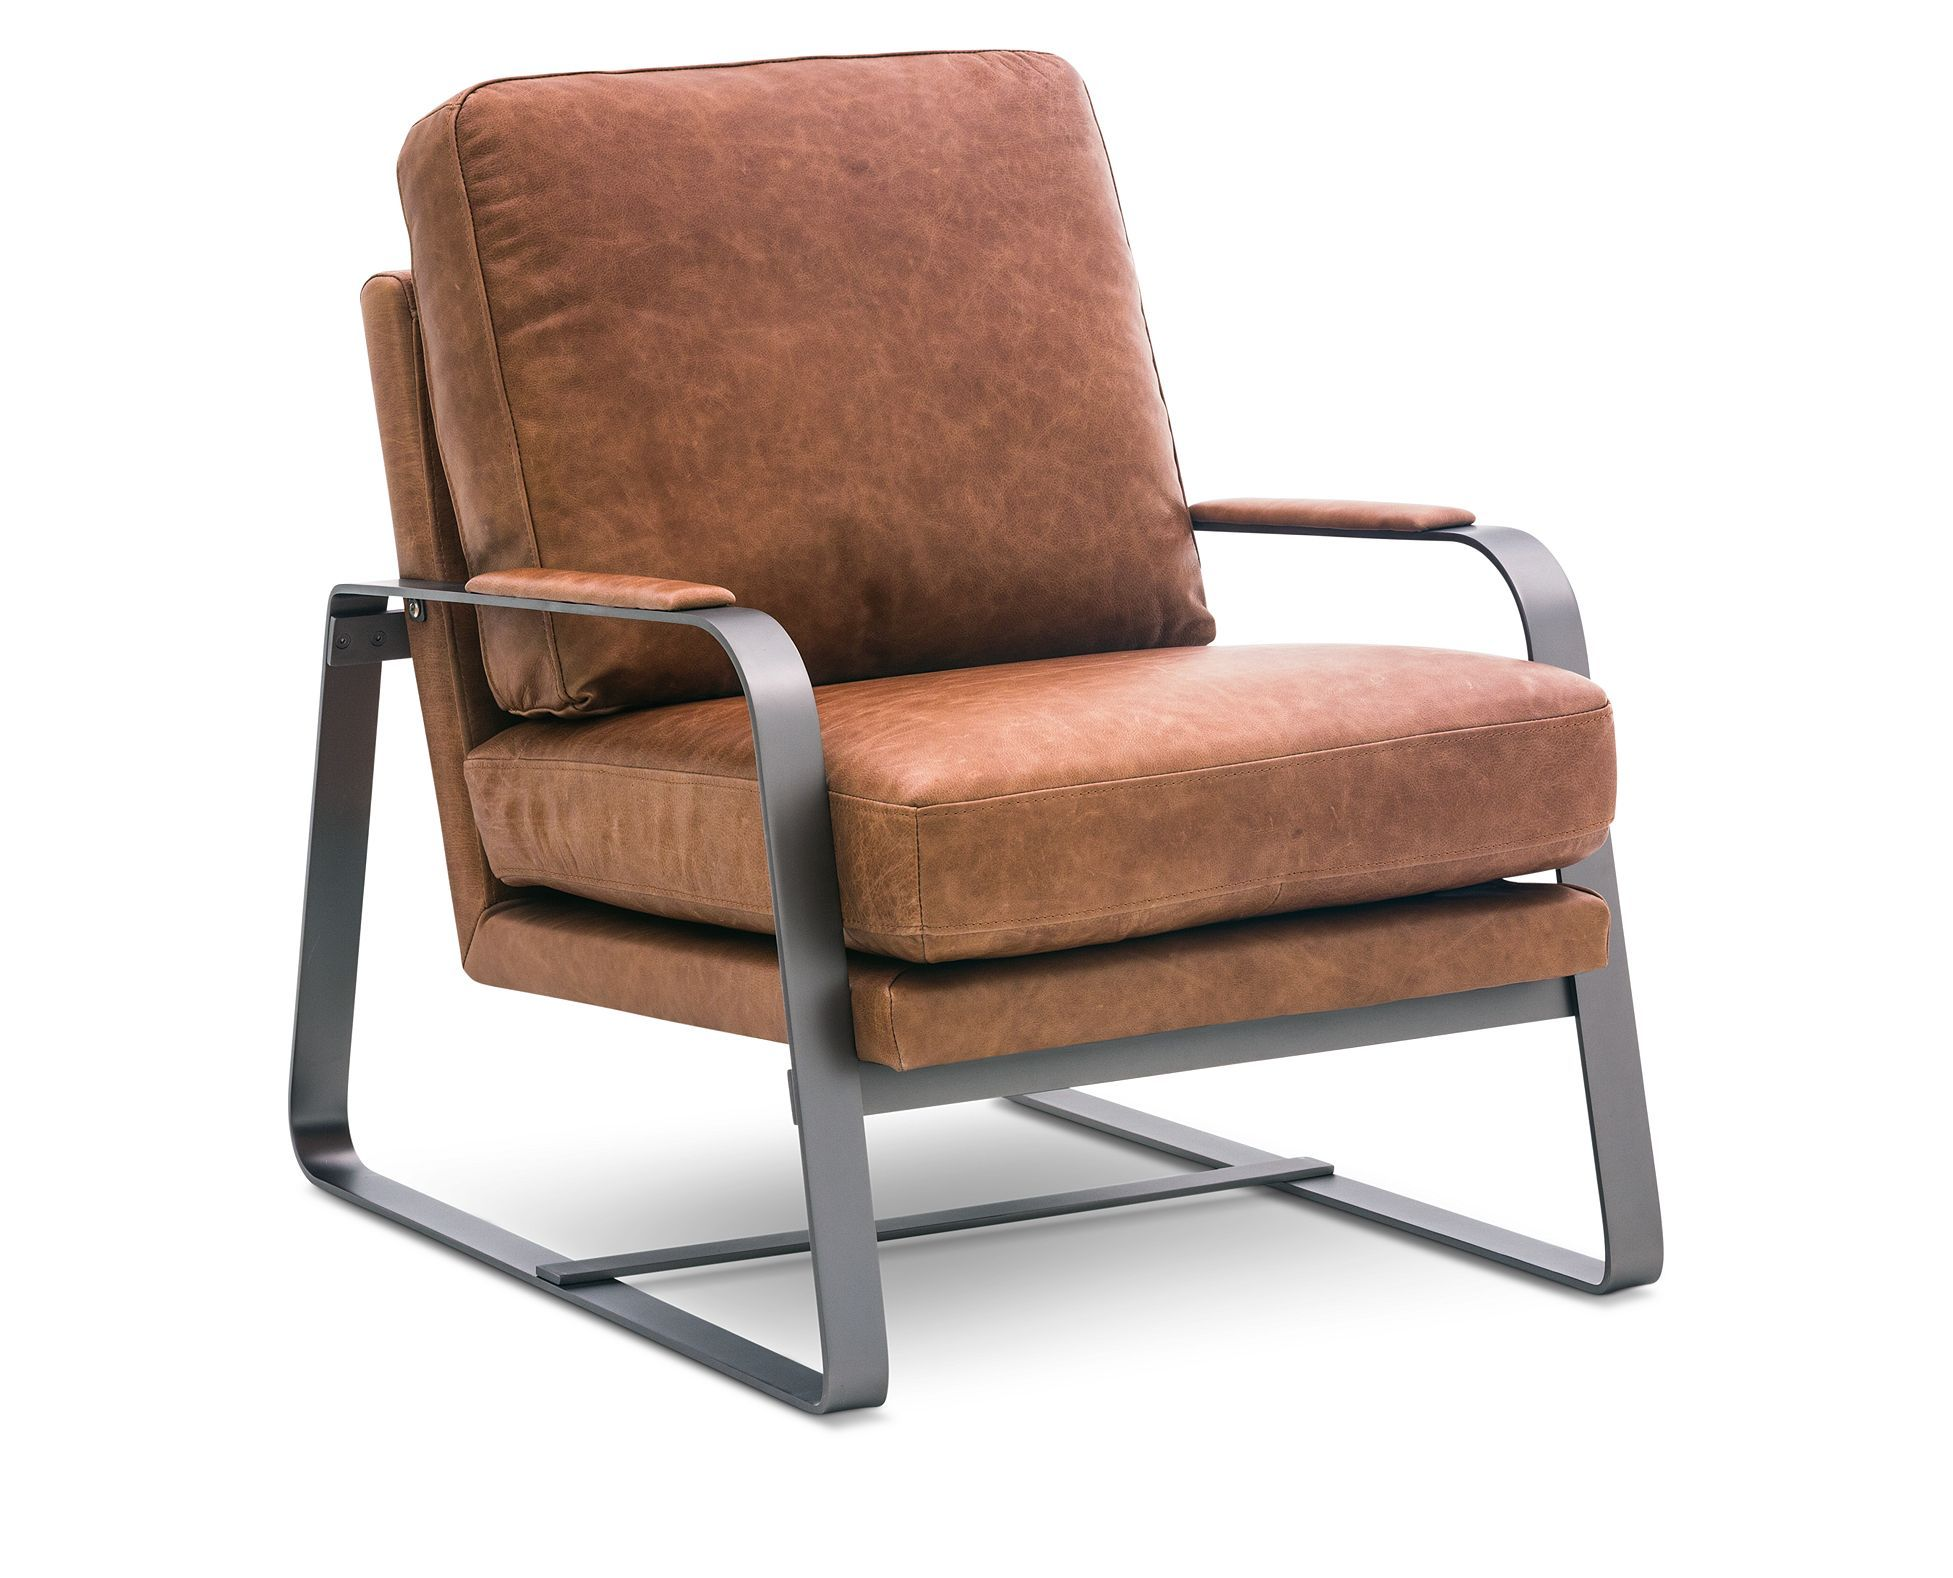 Super Anders Accent Chair Living Room In 2019 Accent Chairs Uwap Interior Chair Design Uwaporg